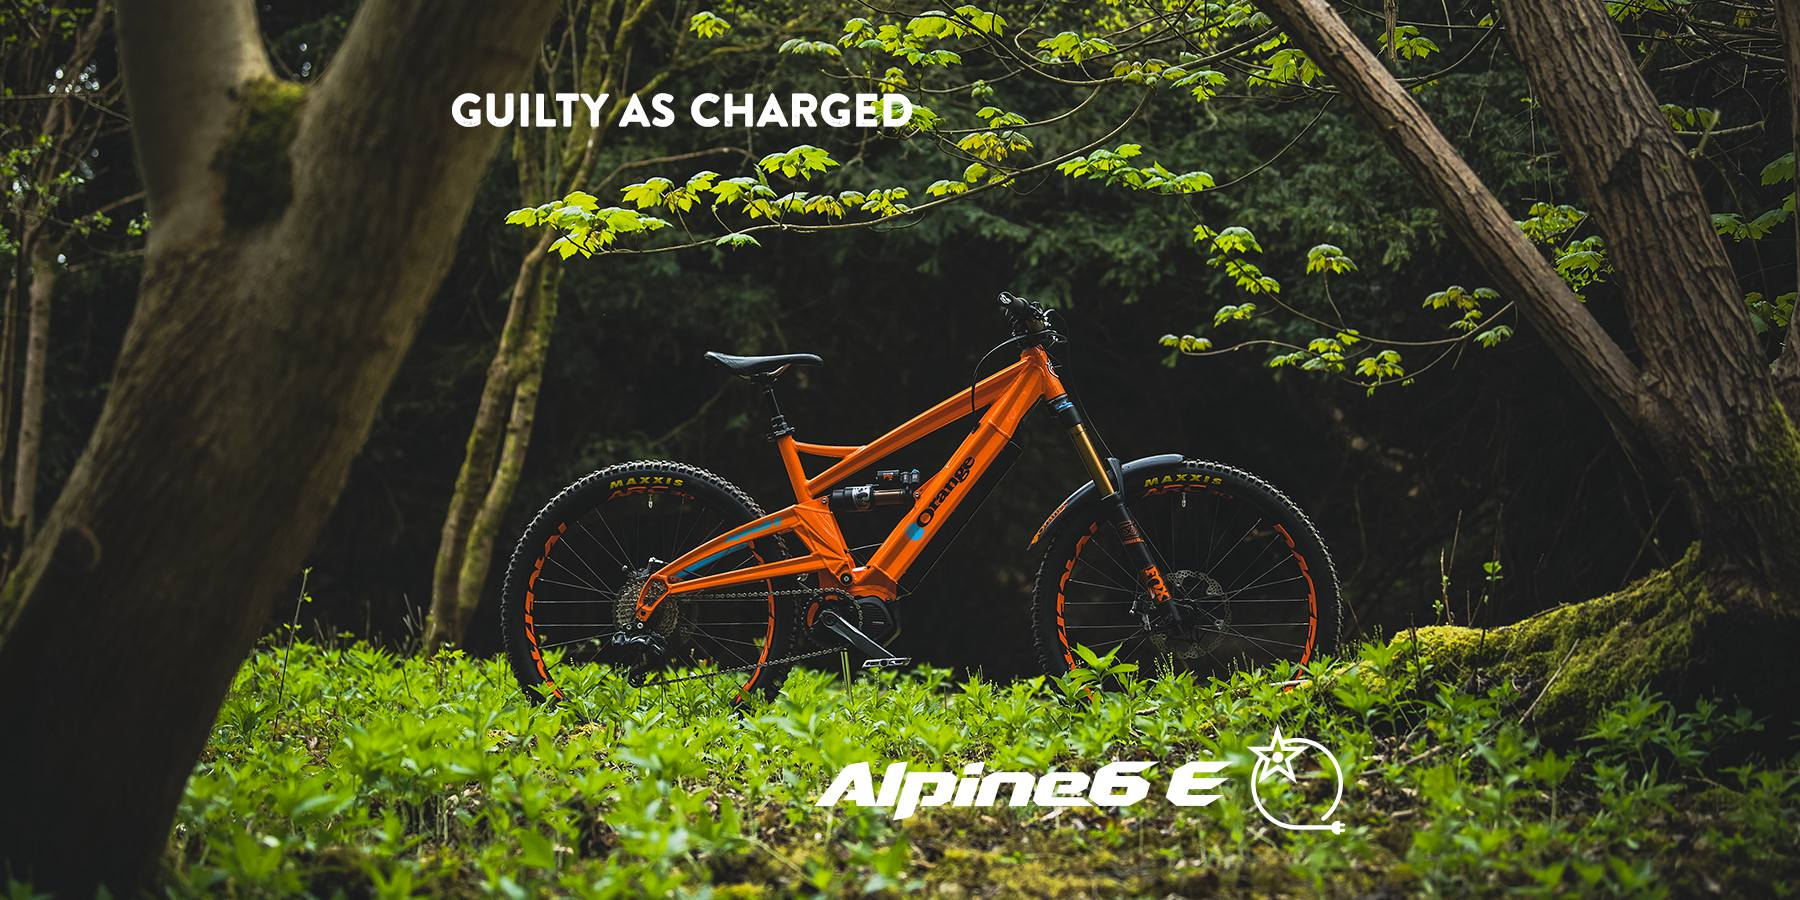 The Alpine 6 E Launching the Electric Powered Orange Program